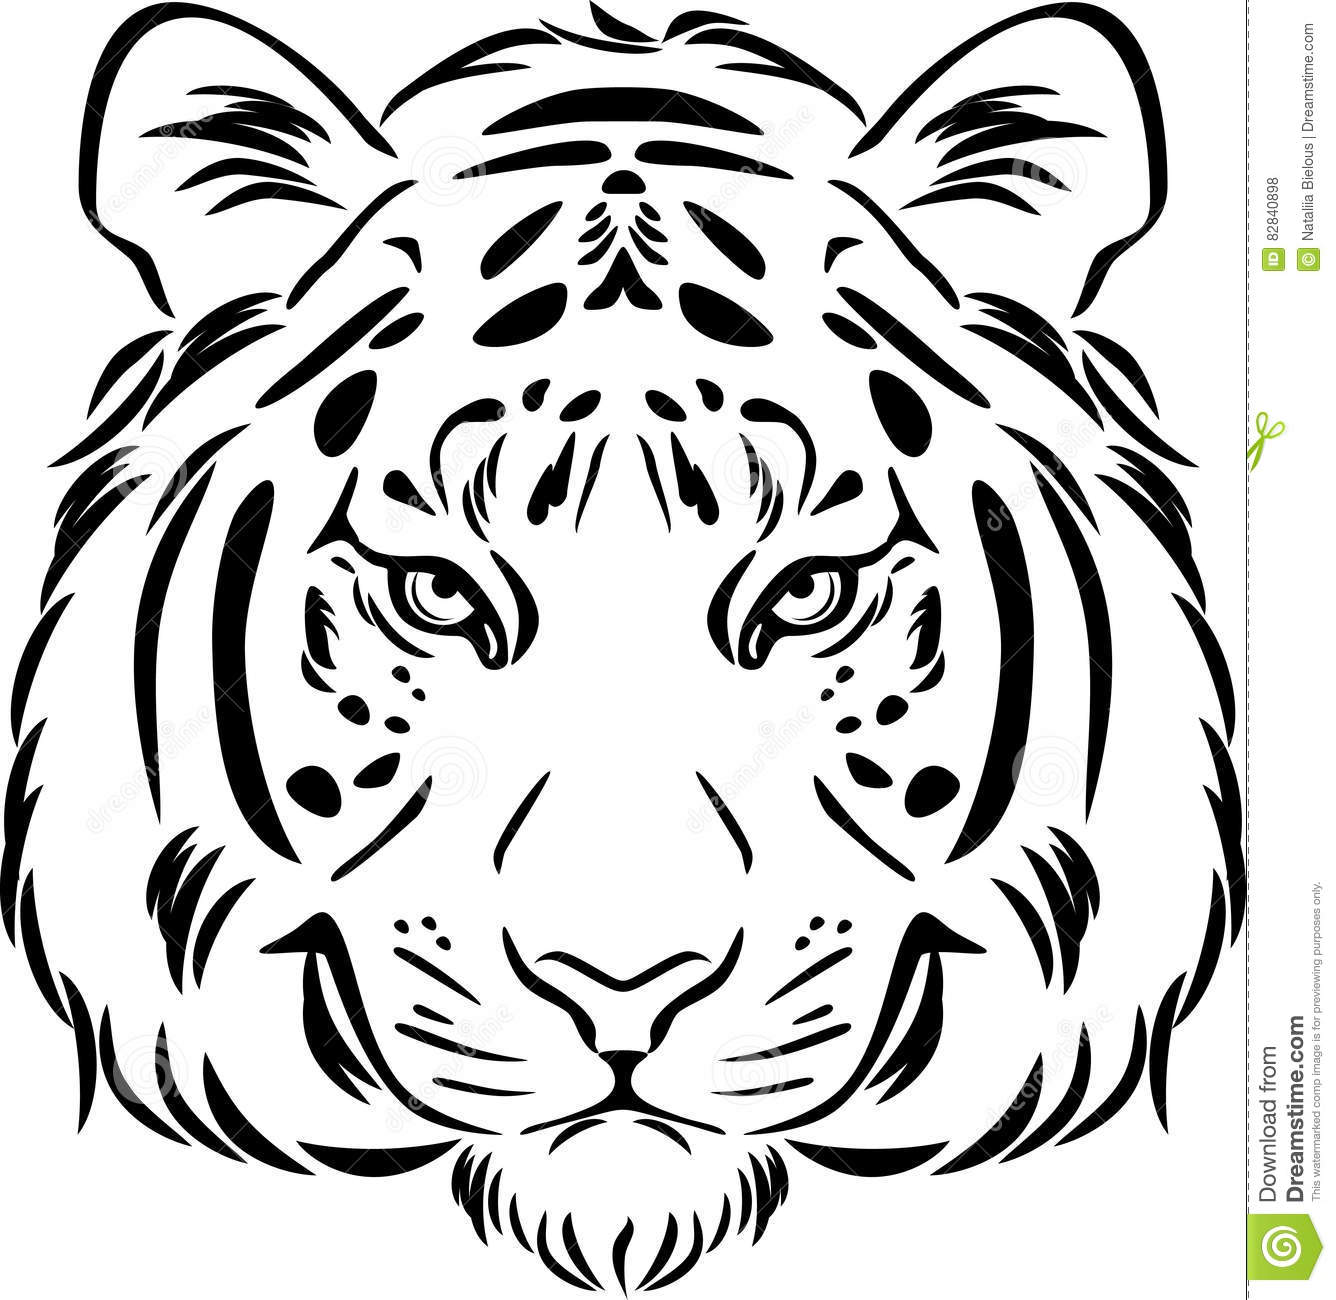 Tiger Head Black And White Outline Stock Vector